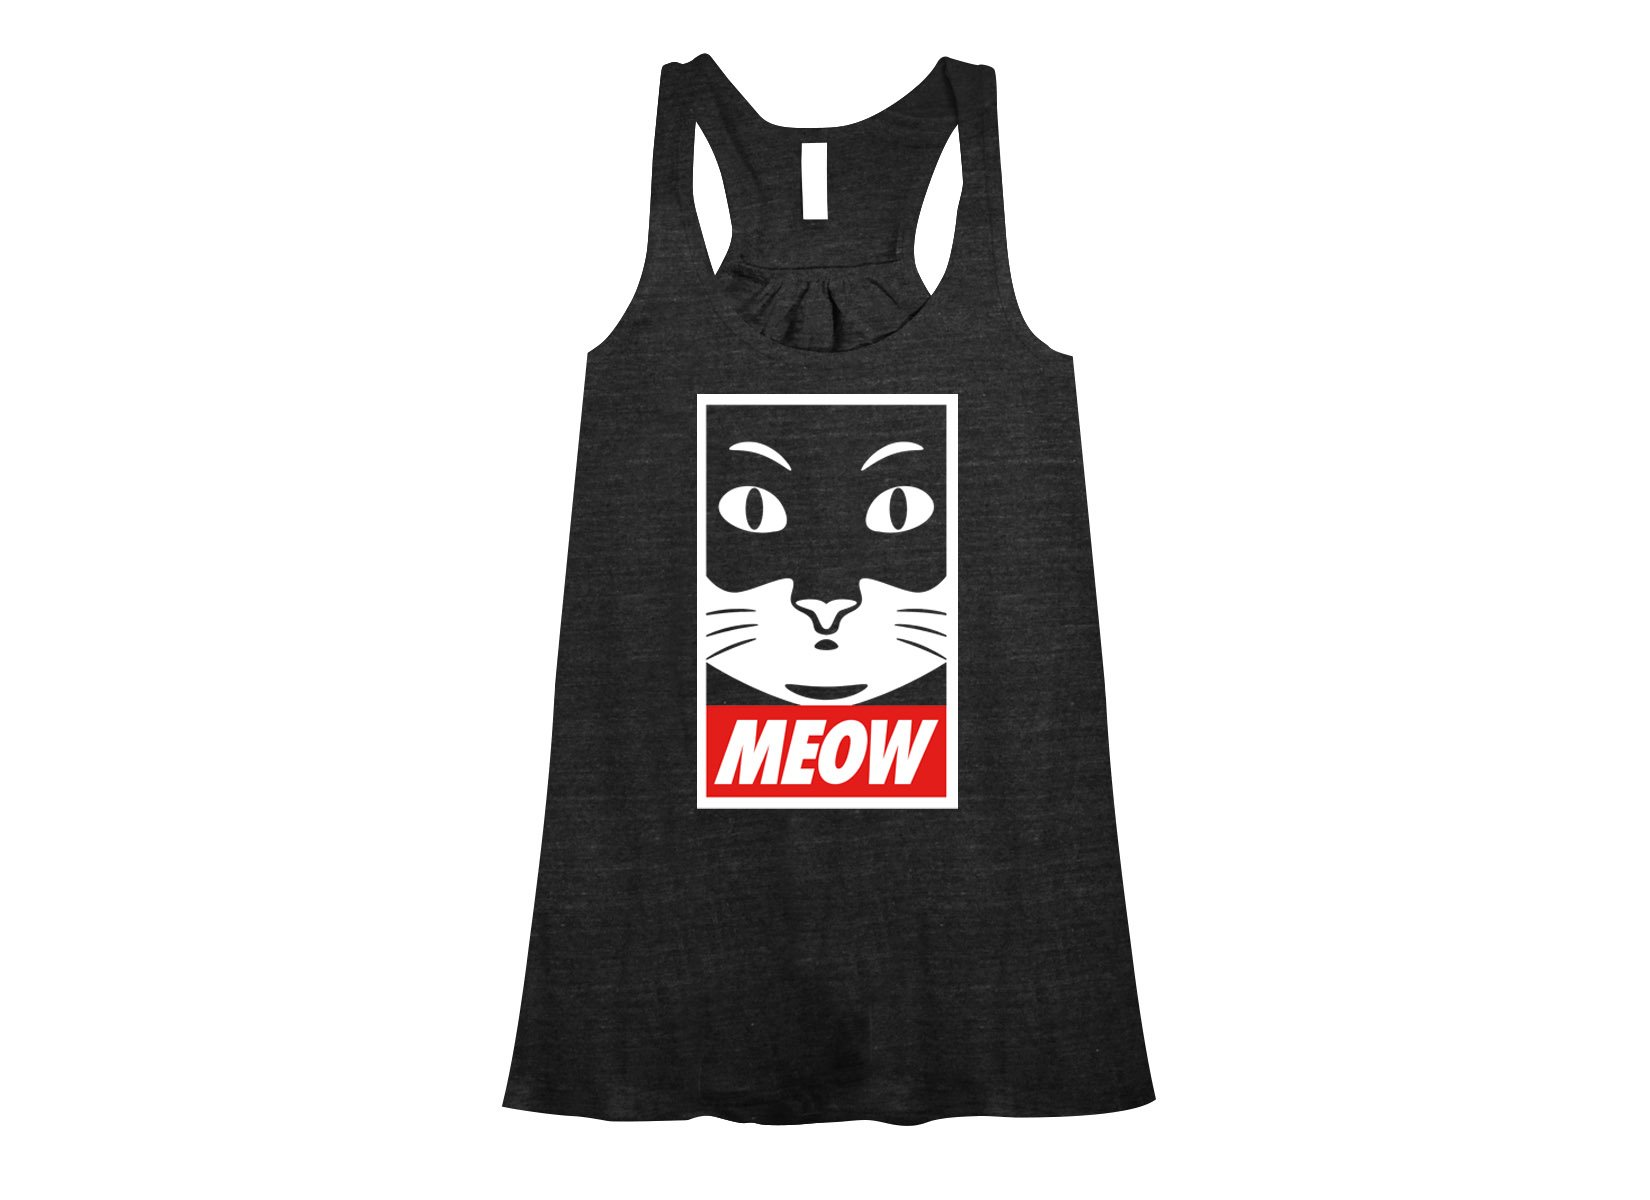 Meow on Womens Tanks T-Shirt